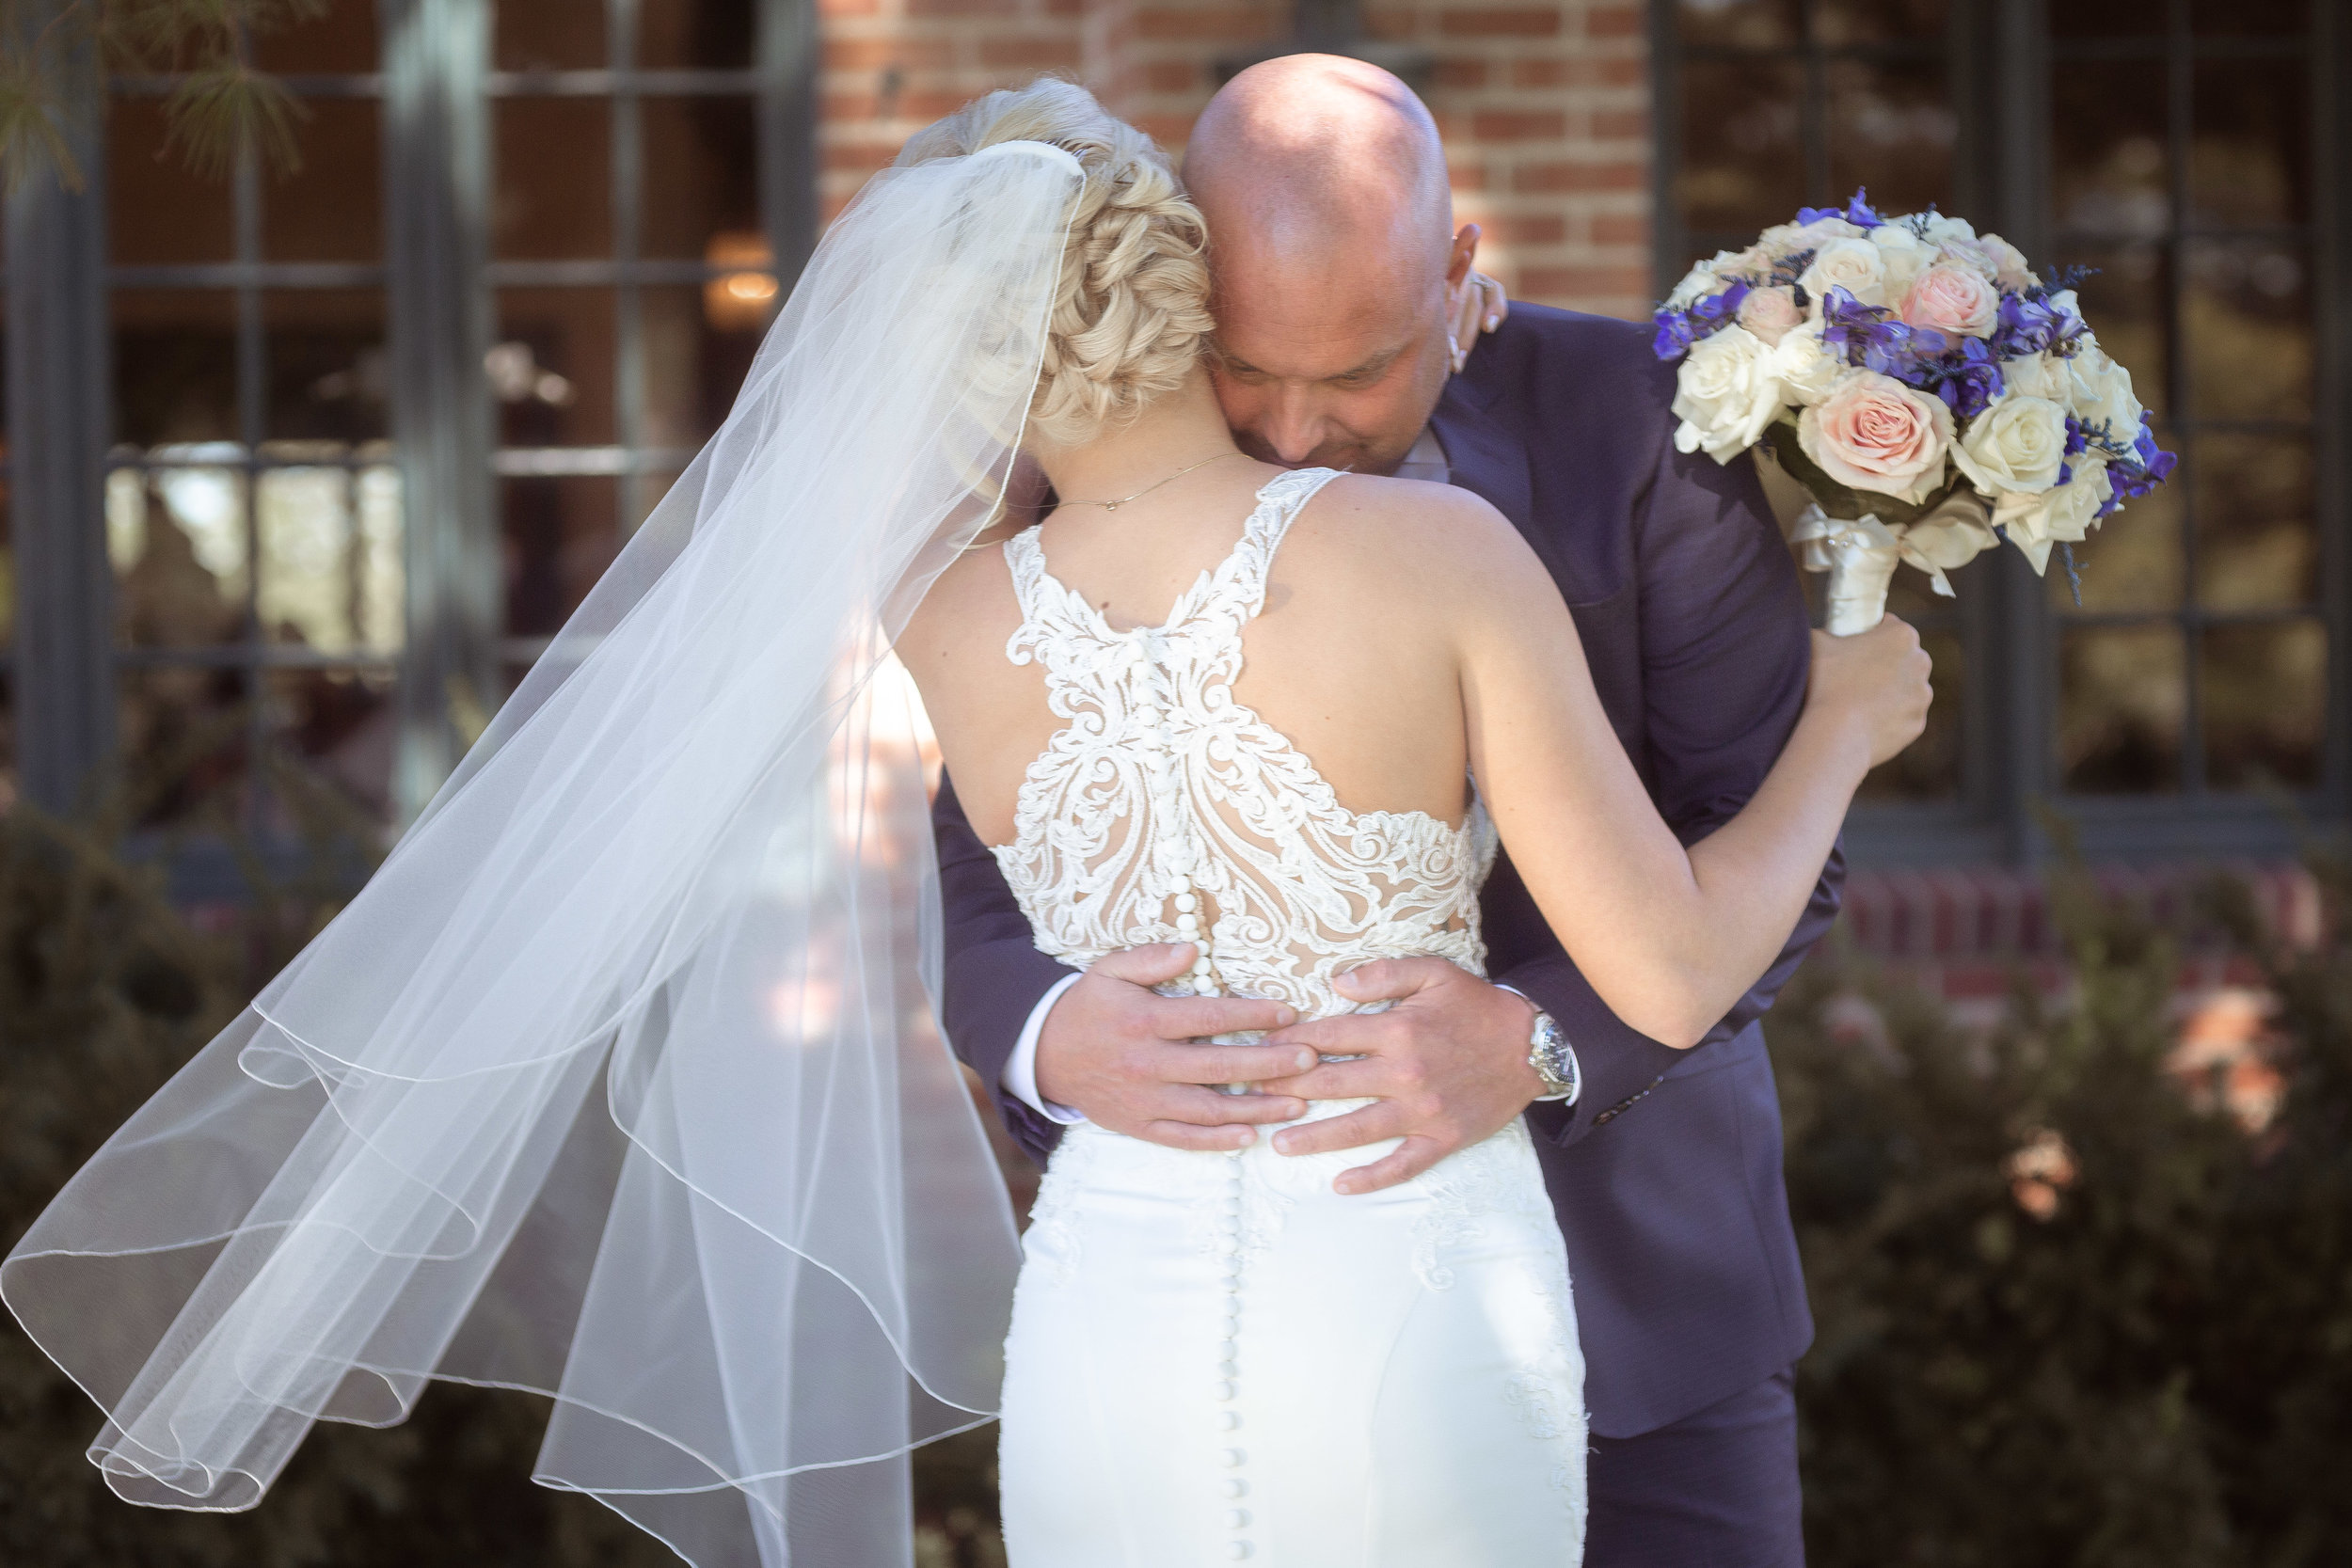 C_Wedding_Tronick, Megan & Andrew_09.22.18-233.JPG